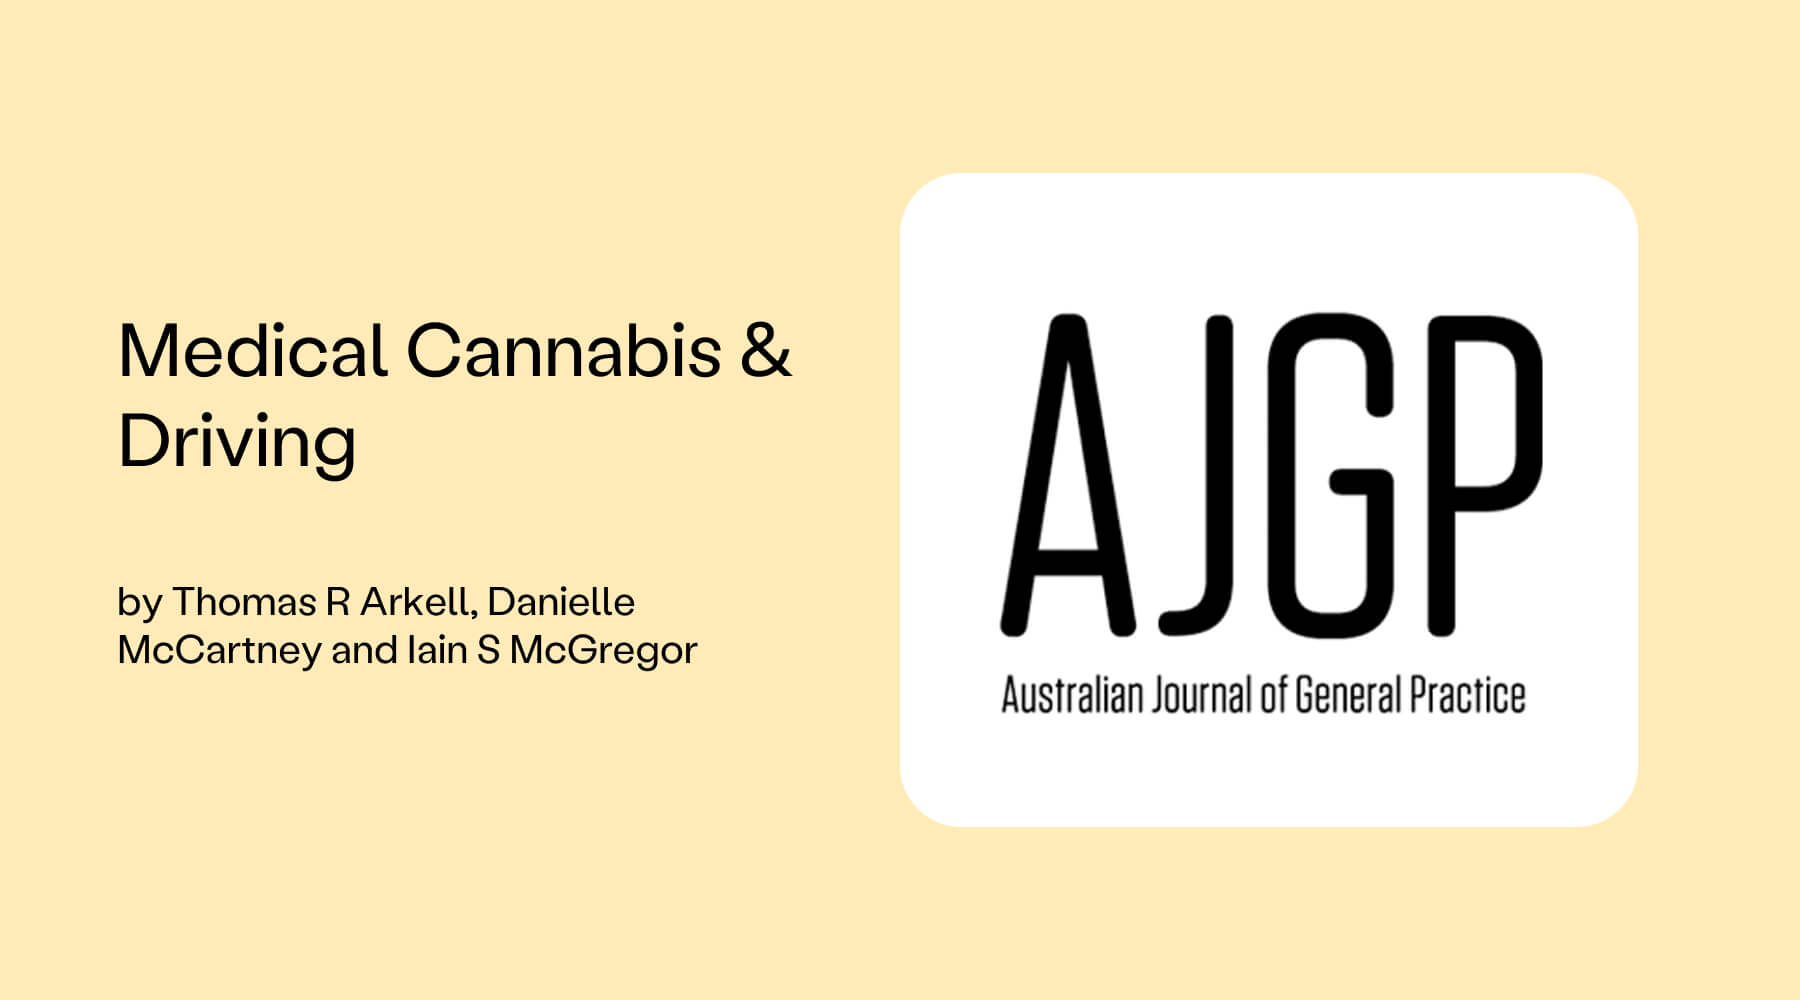 cannabis and driving ajgp tom arkell cover